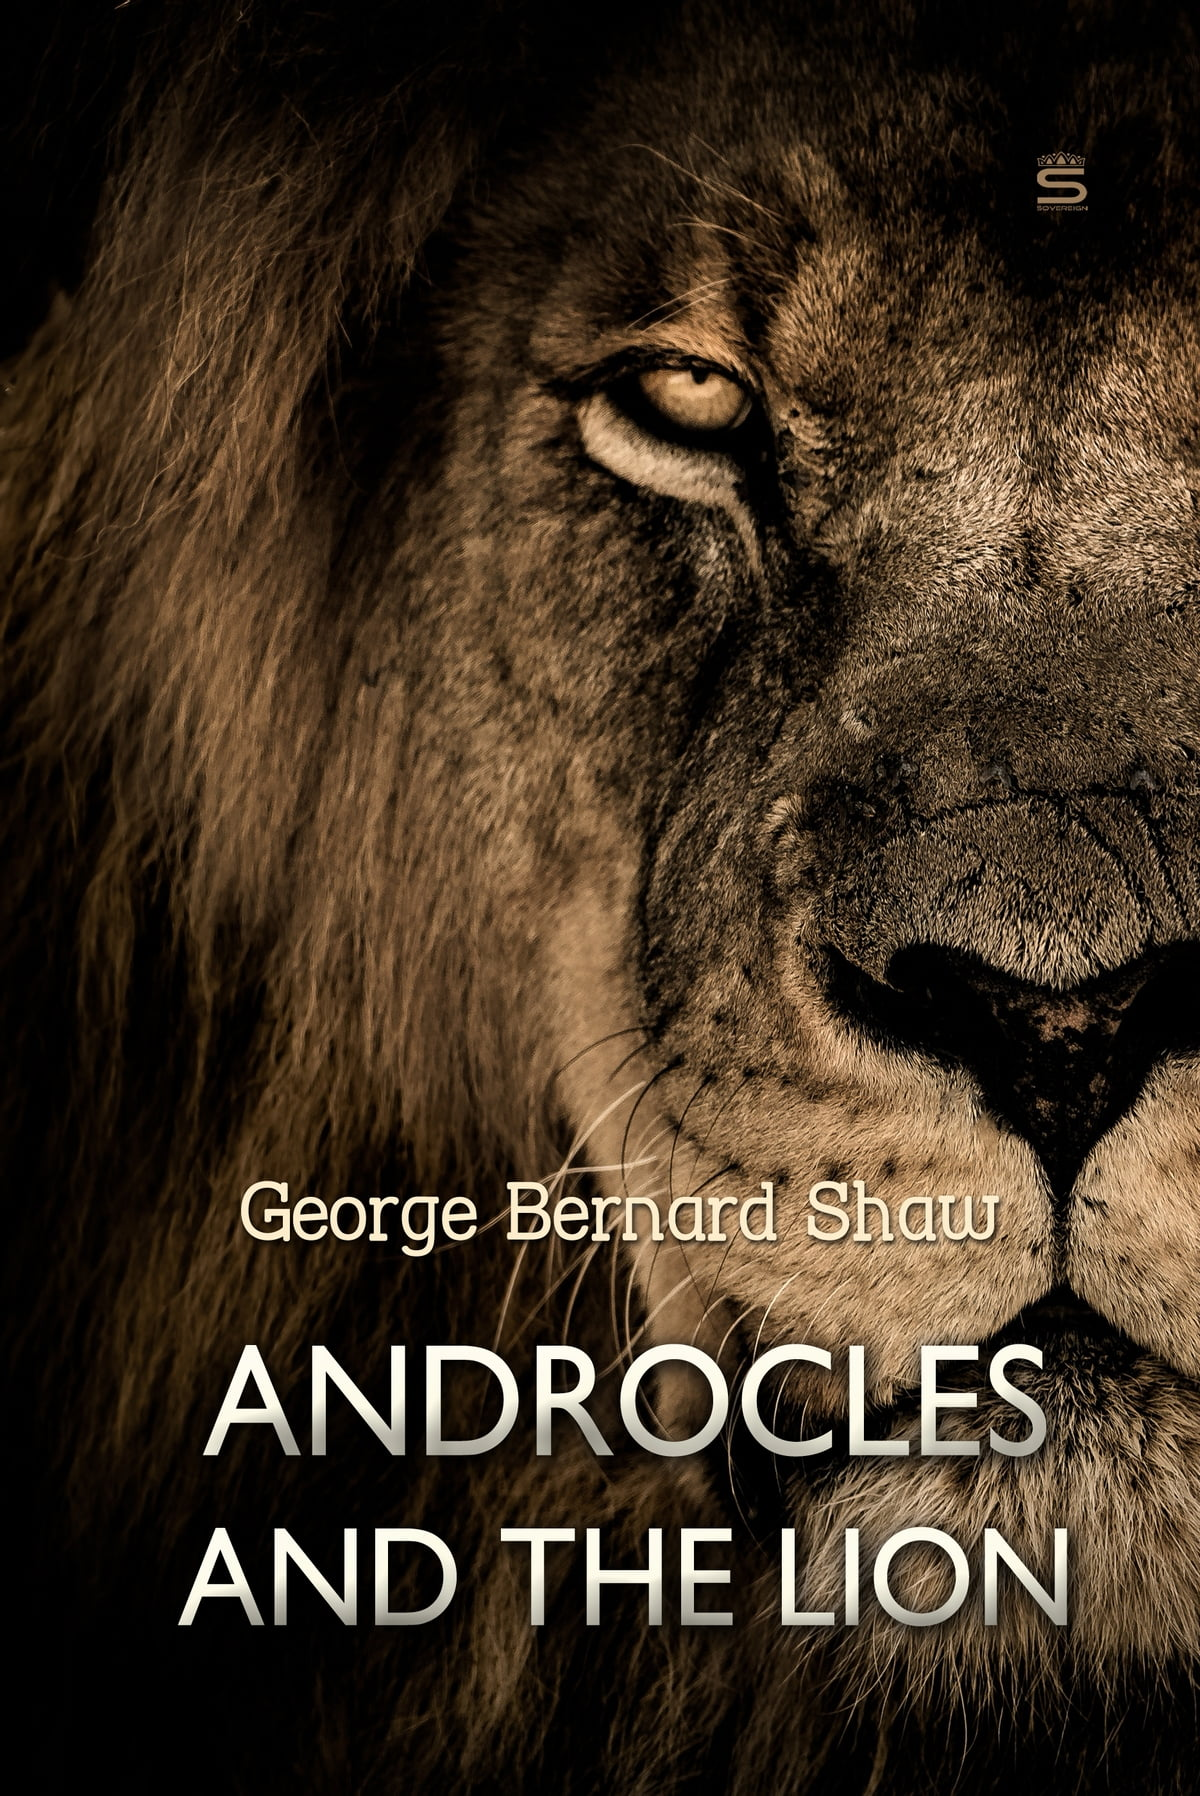 androcles and the lion shaw pdf